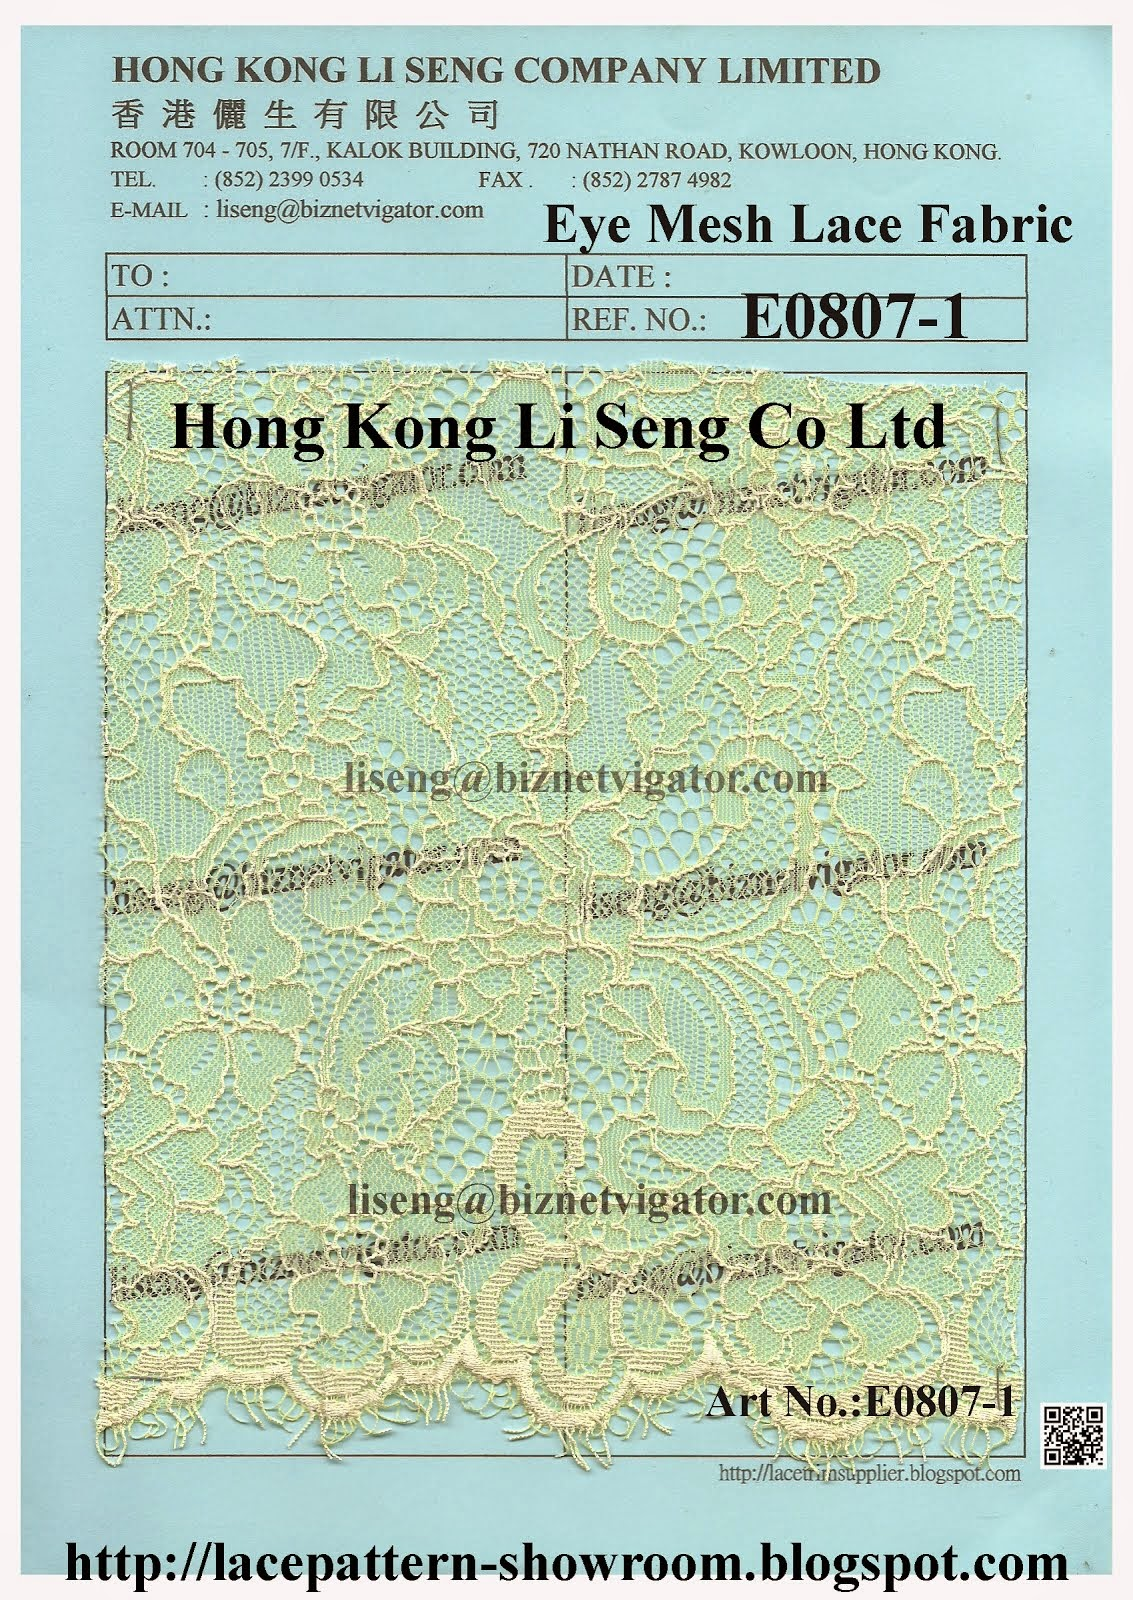 Eye Mesh Lace Fabric Factory Wholesale and Supplier - Hong Kong Li Seng Co Ltd